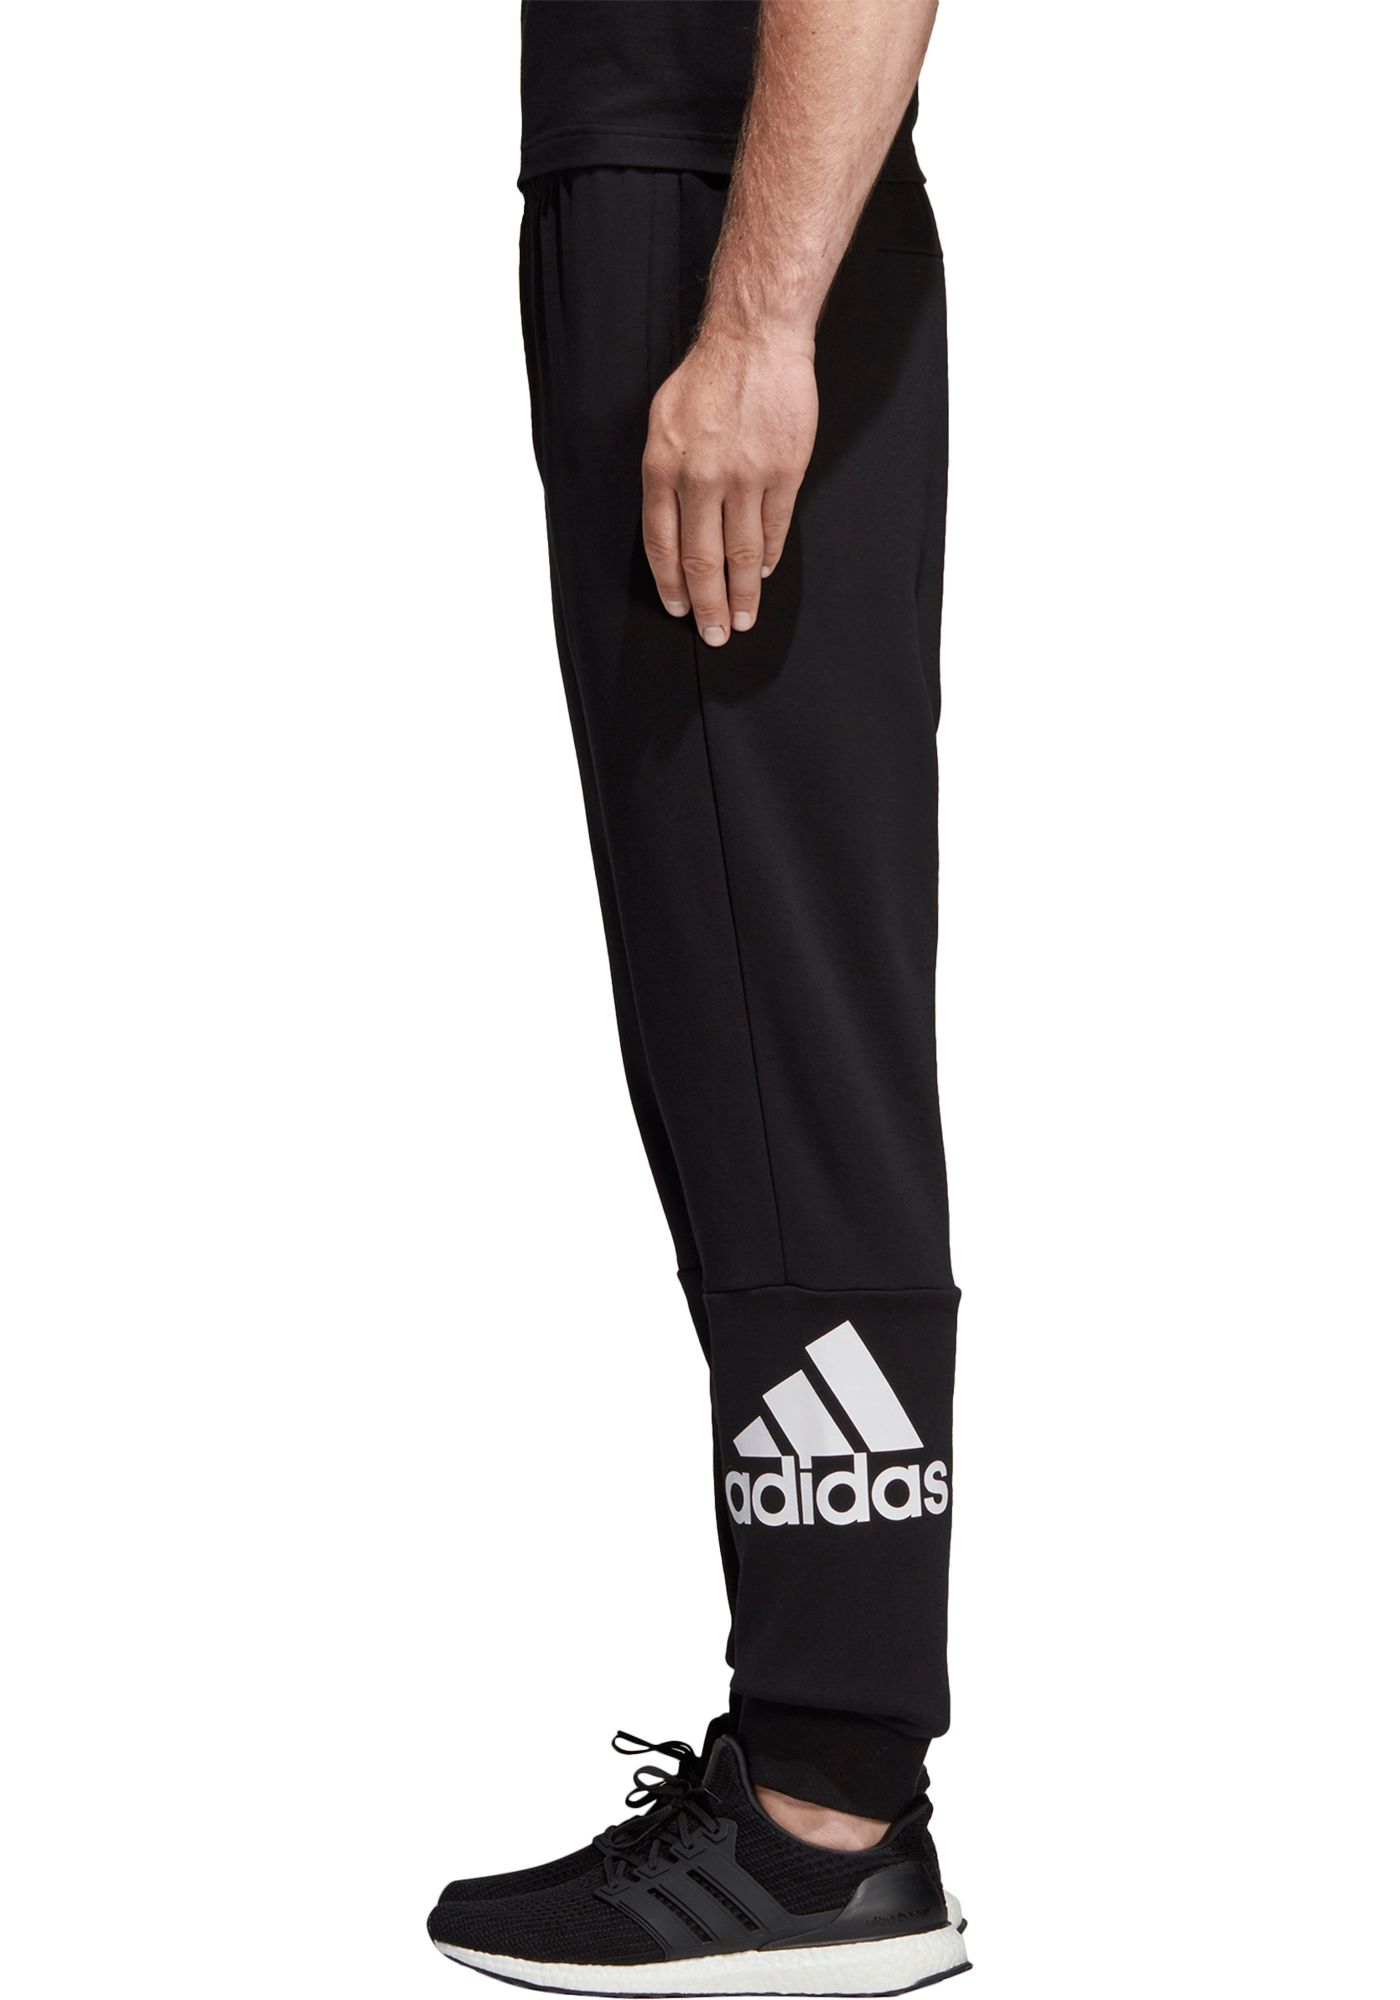 adidas Men's Must Haves Badge of Sport Logo Tapered Pants